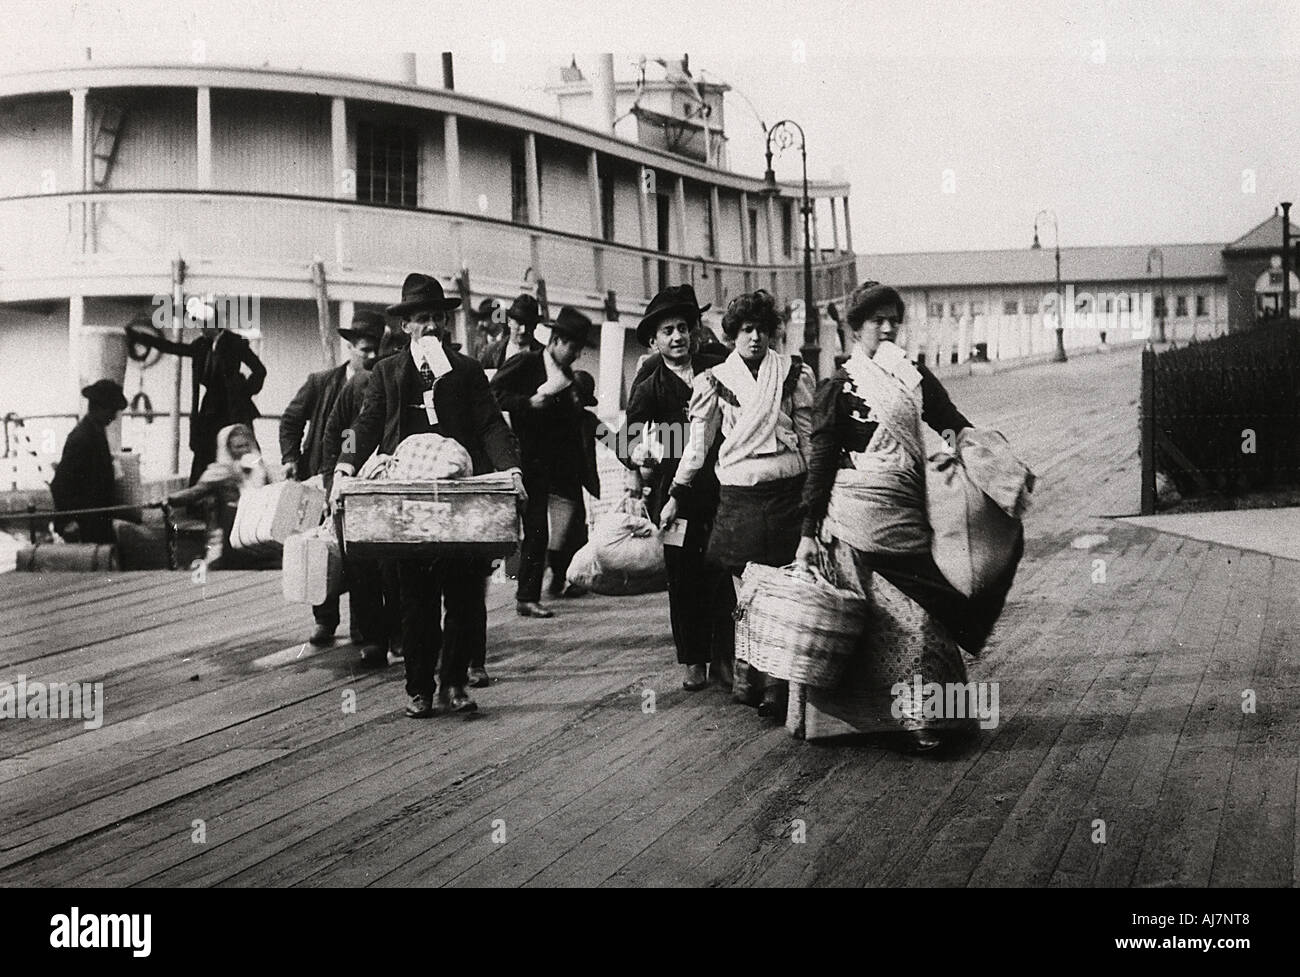 Einwanderer in den USA landet auf Ellis Island New York 1900 Stockbild